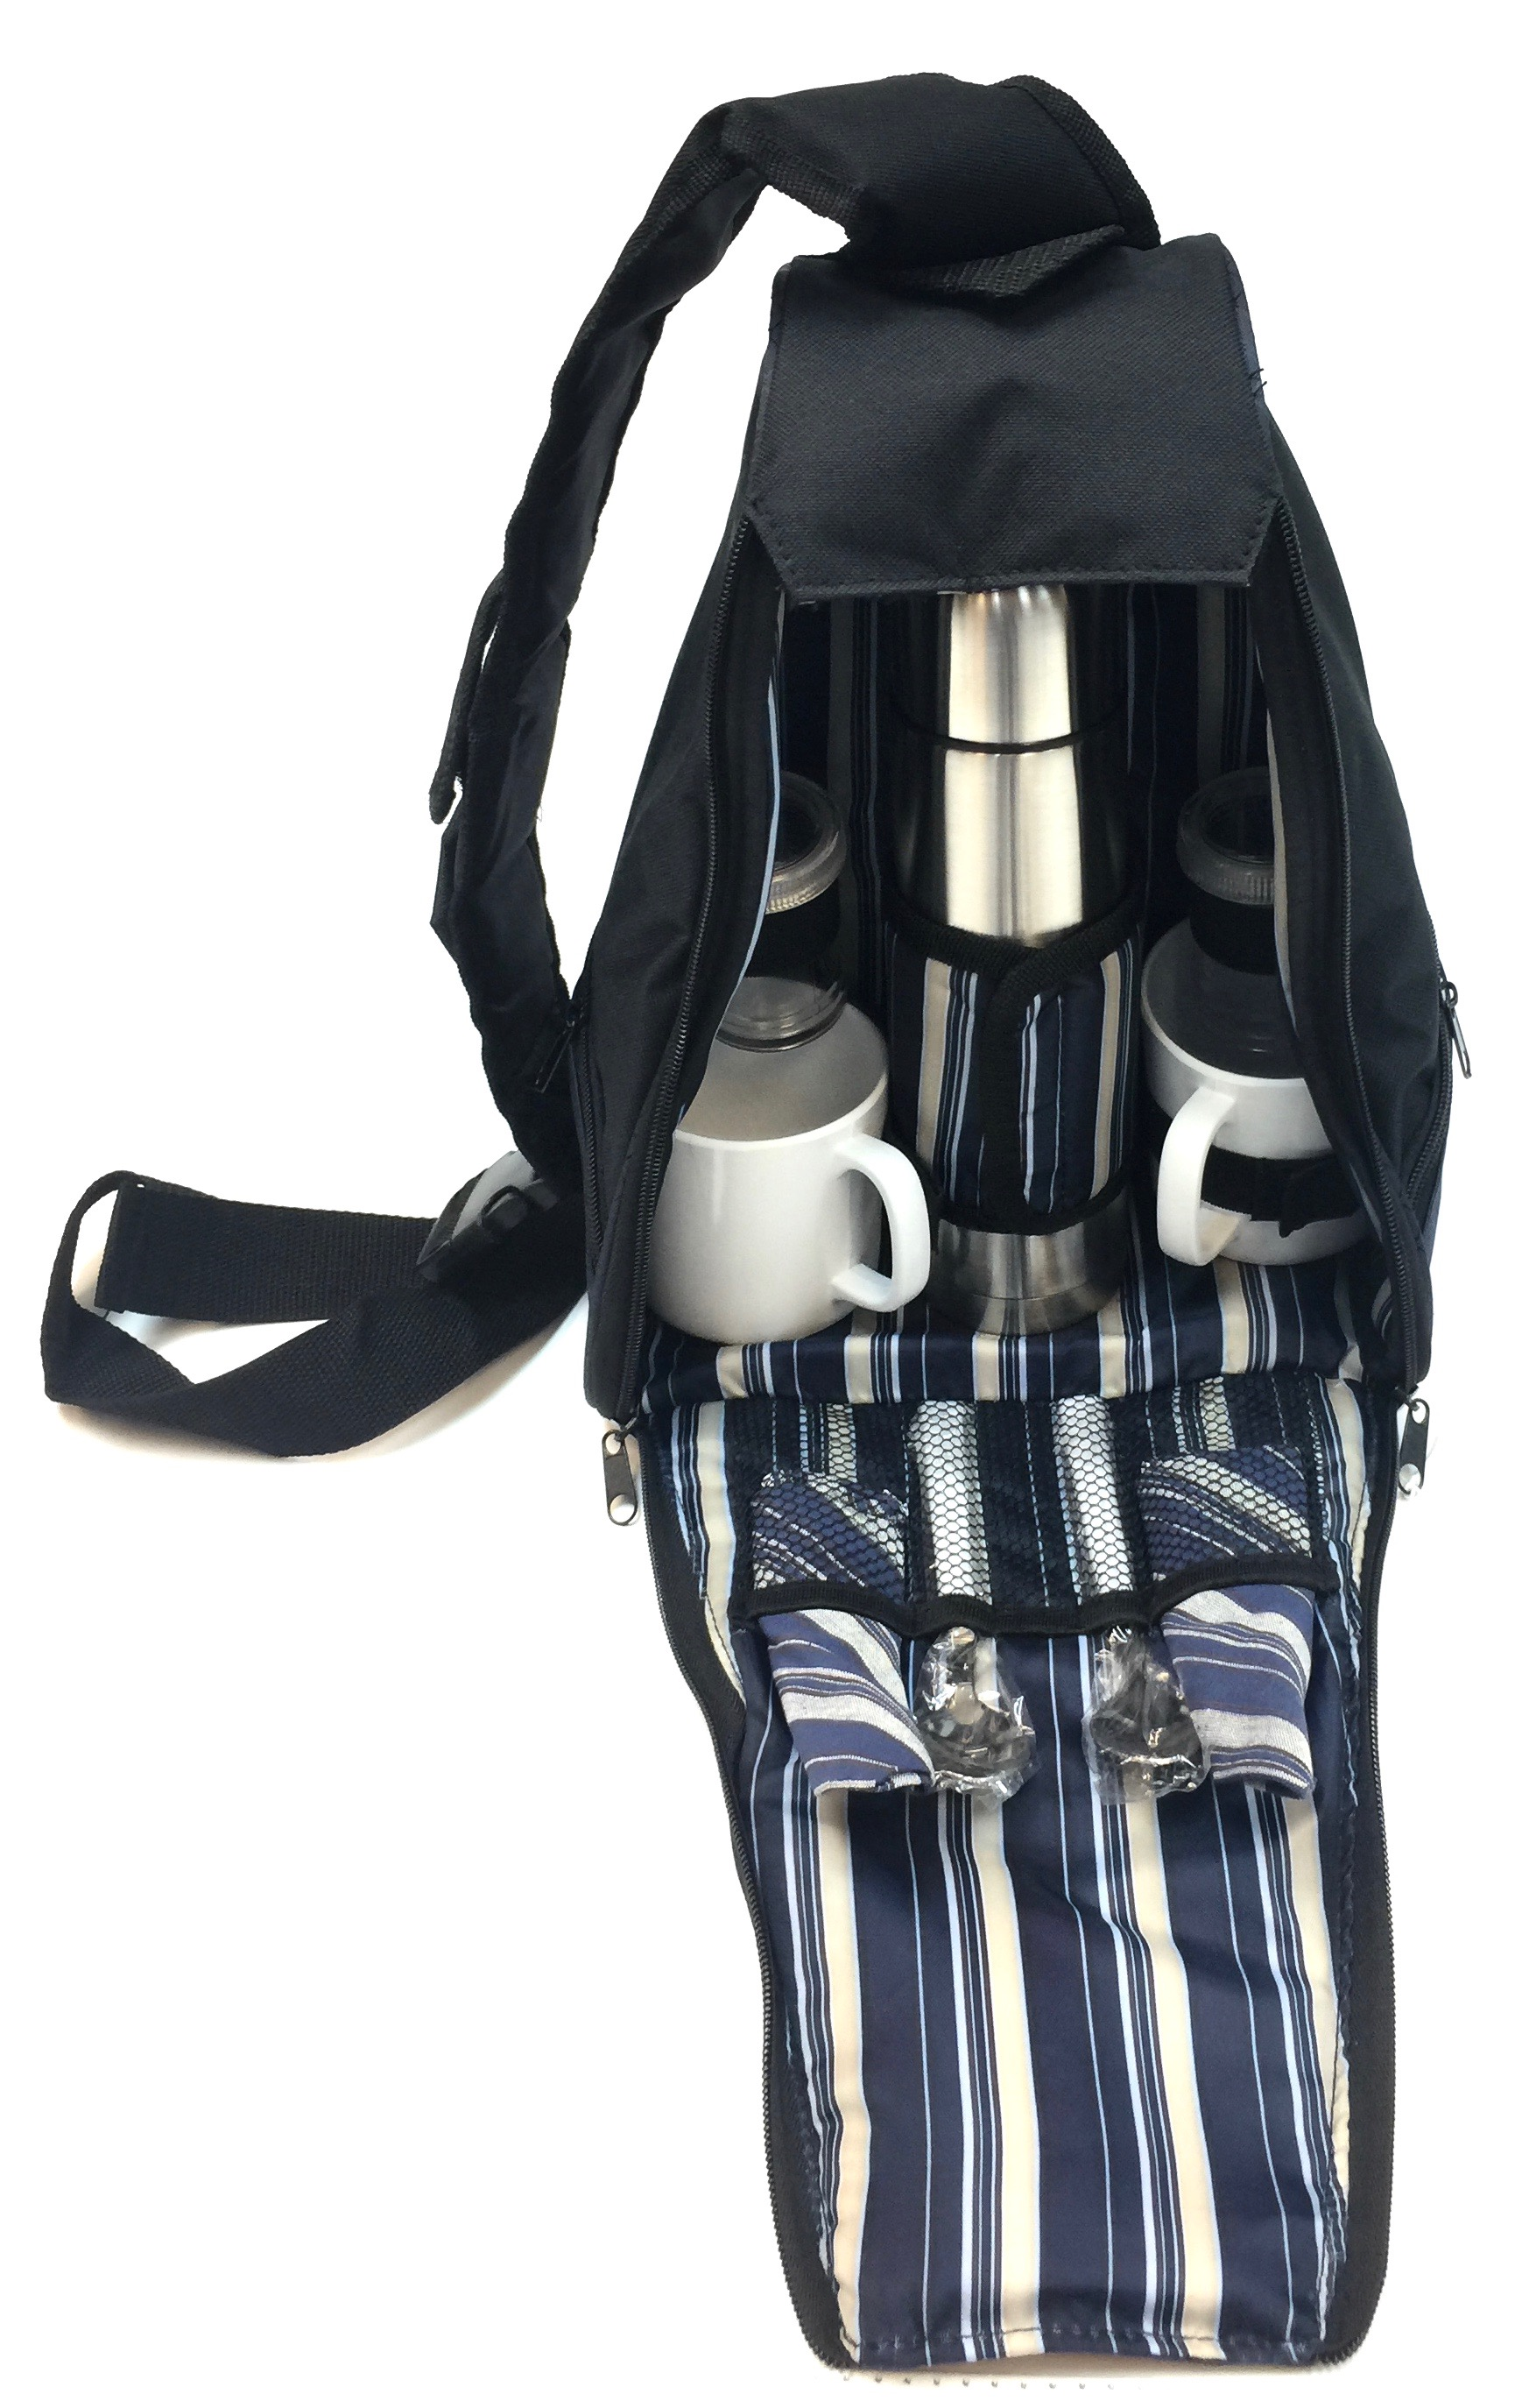 Camping Backpack W/thermos/Utensils - Navy